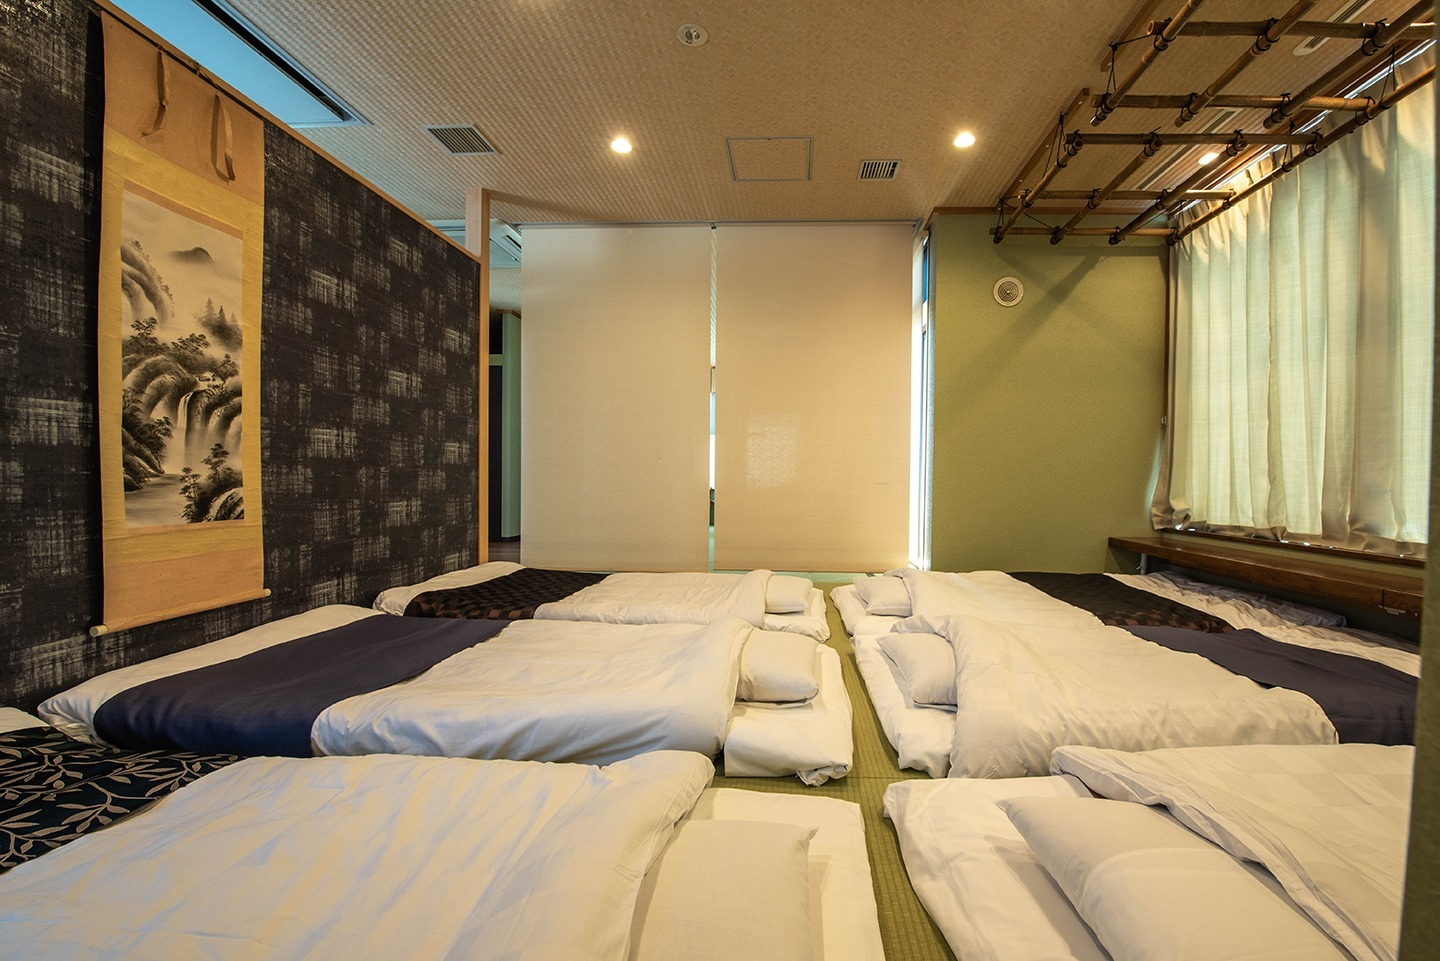 Great experience of Japanese traditional FUTON mattresses-6 single sized futon can be provided 布団を最大6組ご用意可能です。